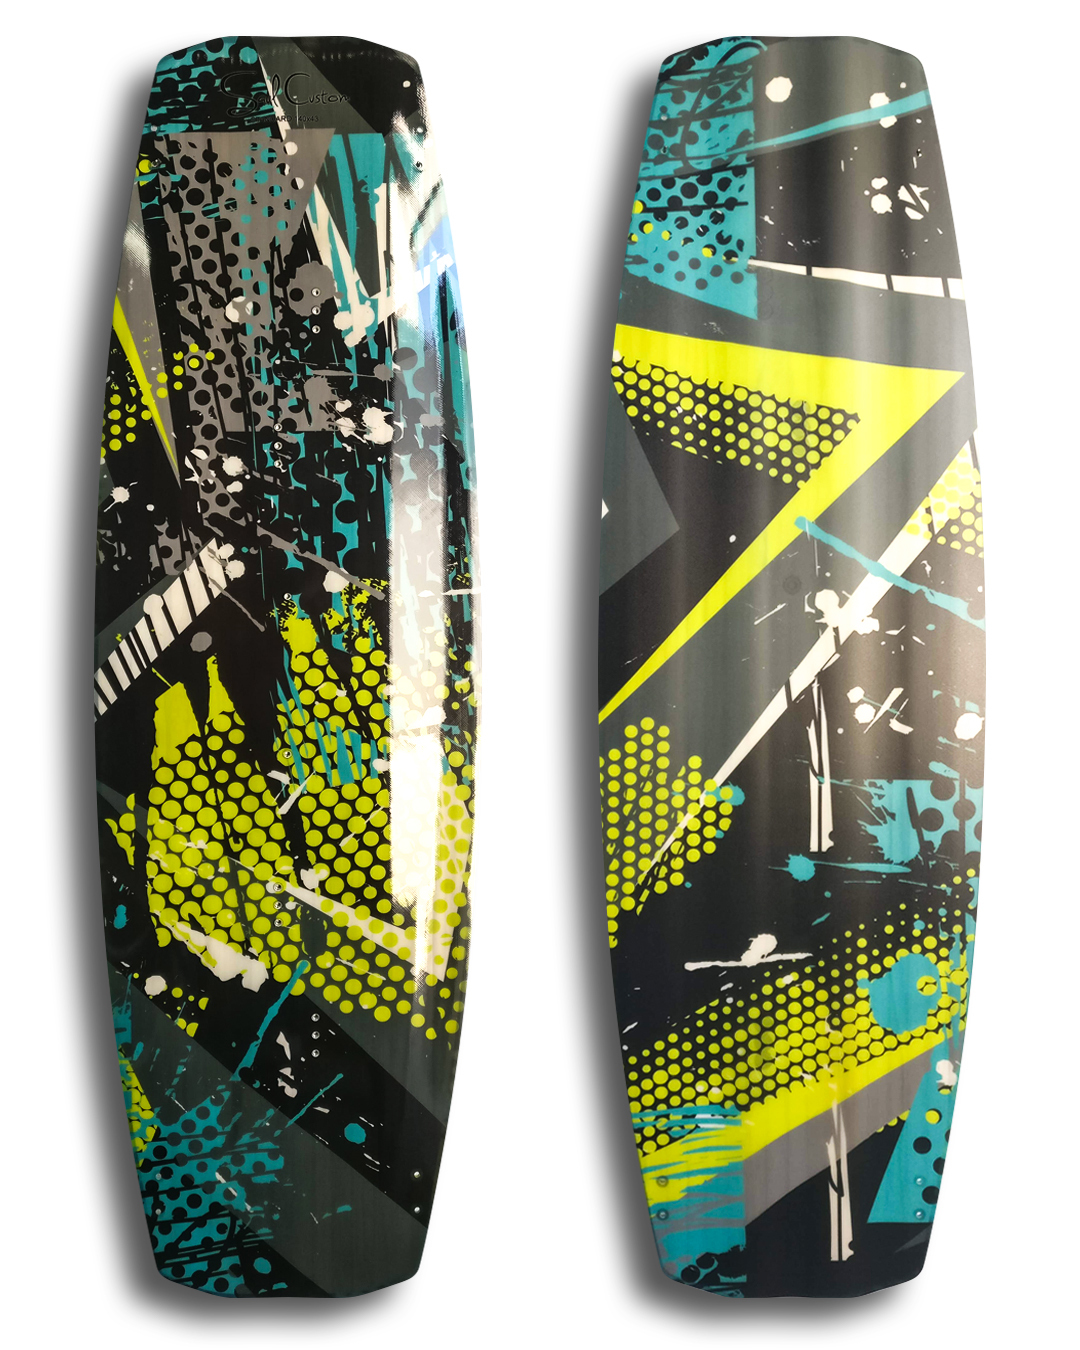 Standard 2.0 kiteboard - Vivid custom graphics - Wood core - Triaxial fiberglass construction